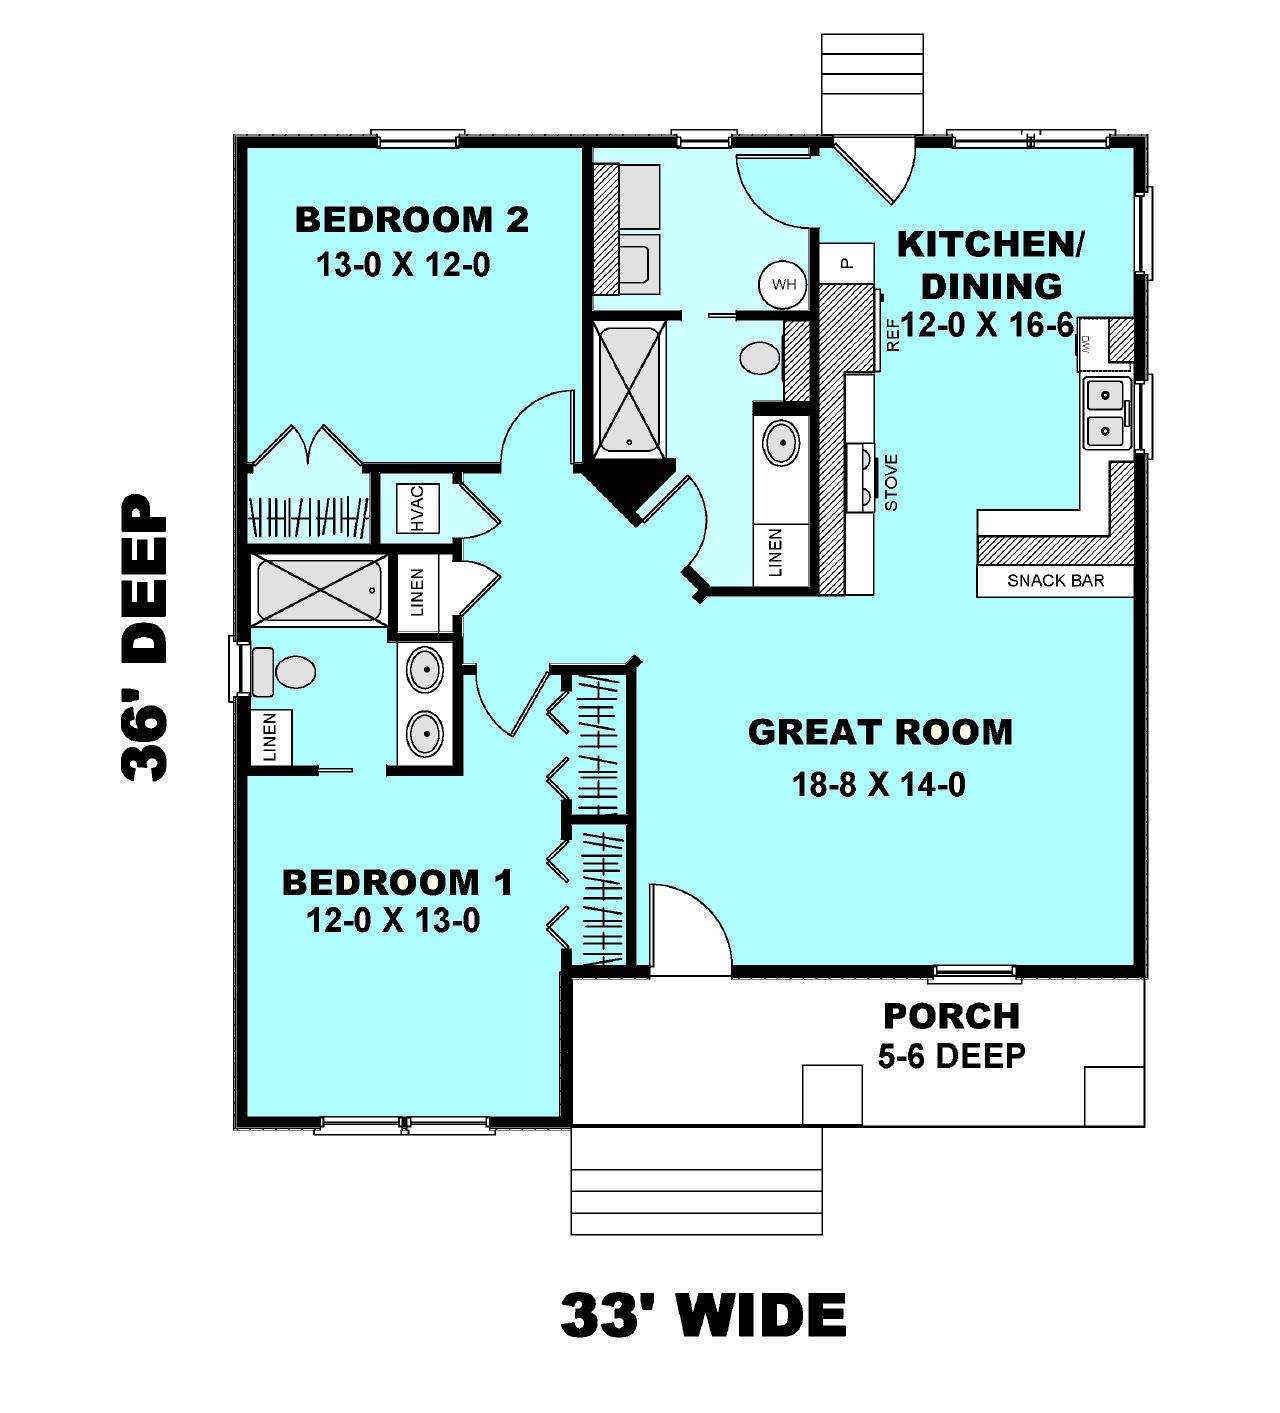 Cottage style house plan beds baths sq ft main floor houseplans also  like this bedroom build or rh pinterest